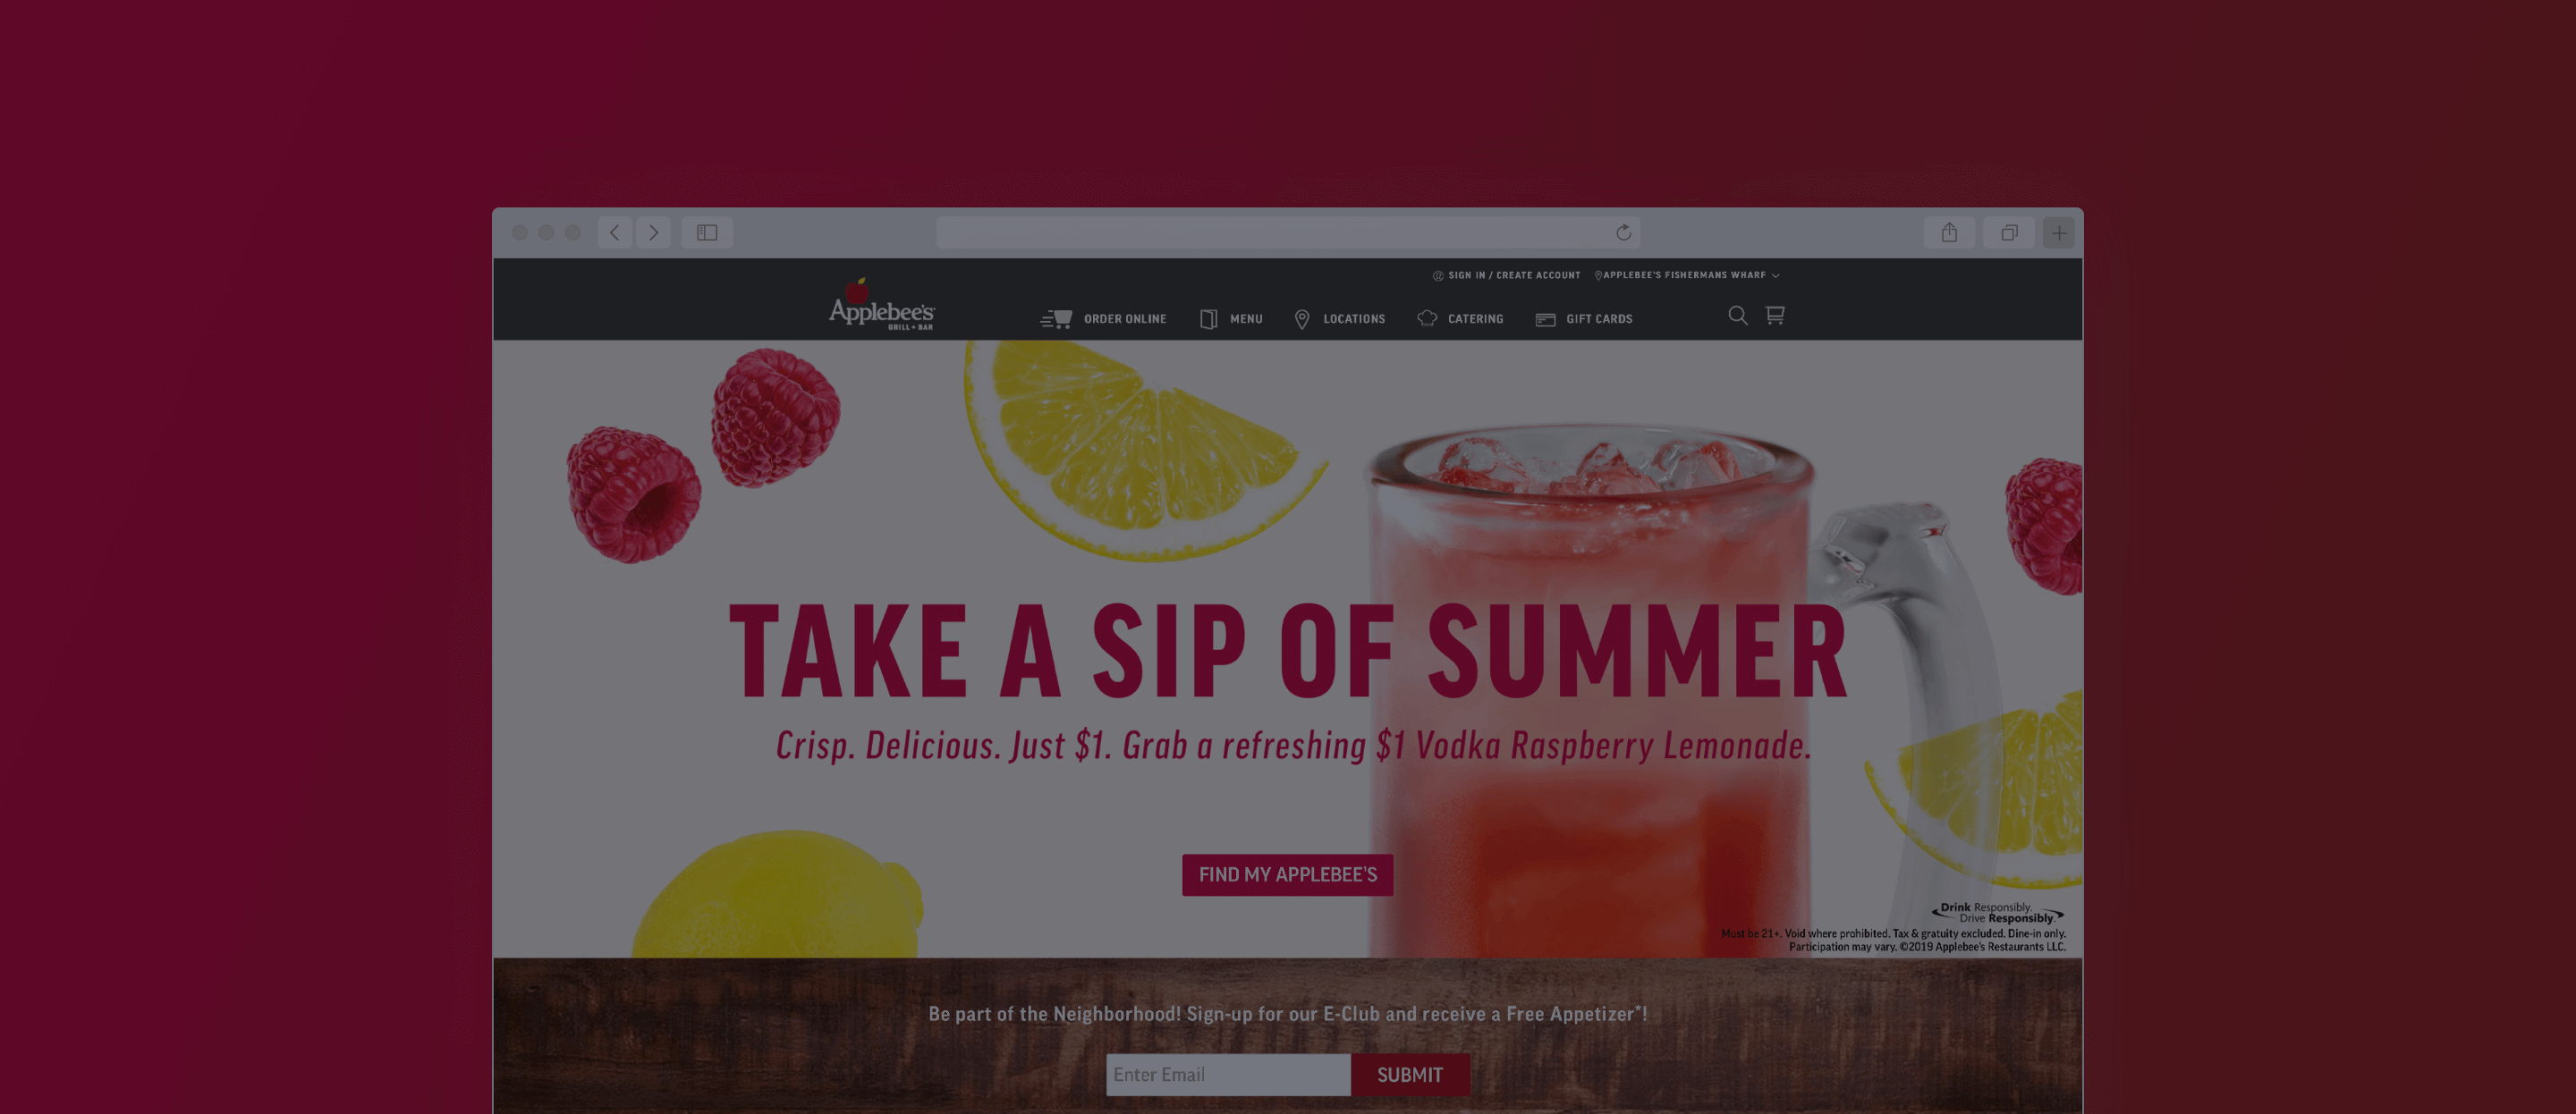 Applebee's Website by ArcTouch